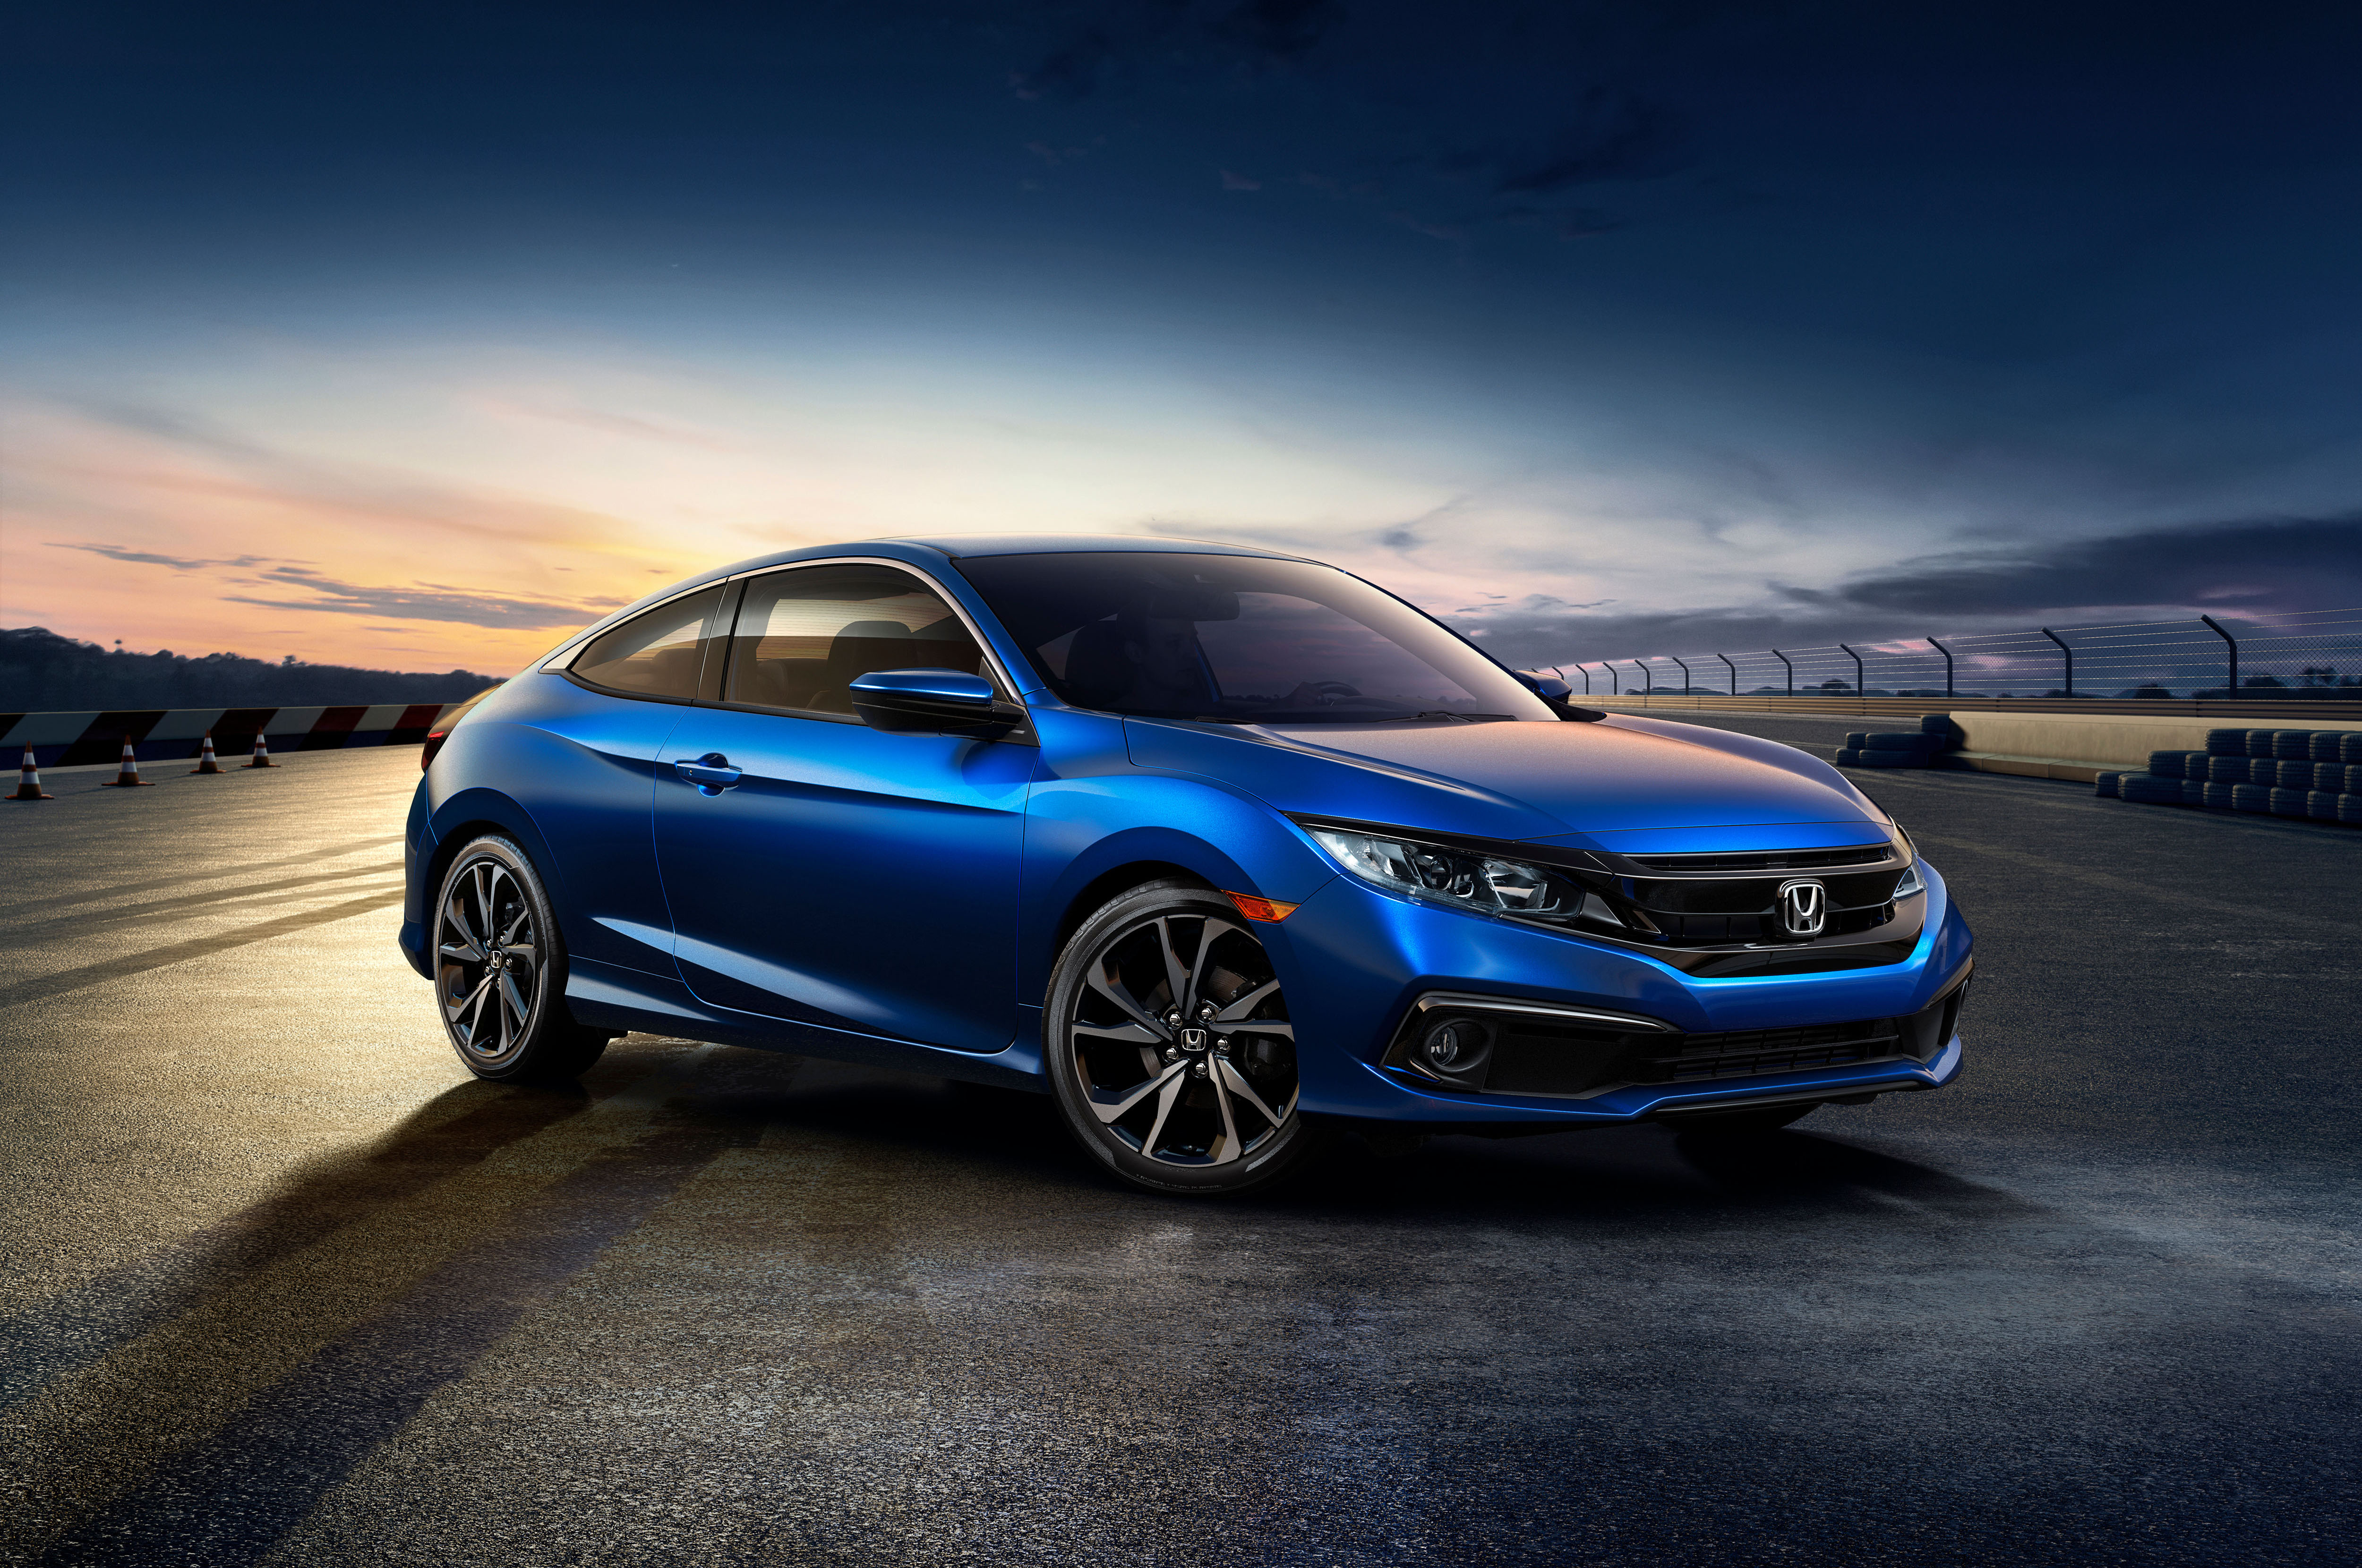 Bound Honda Civic facelift revealed